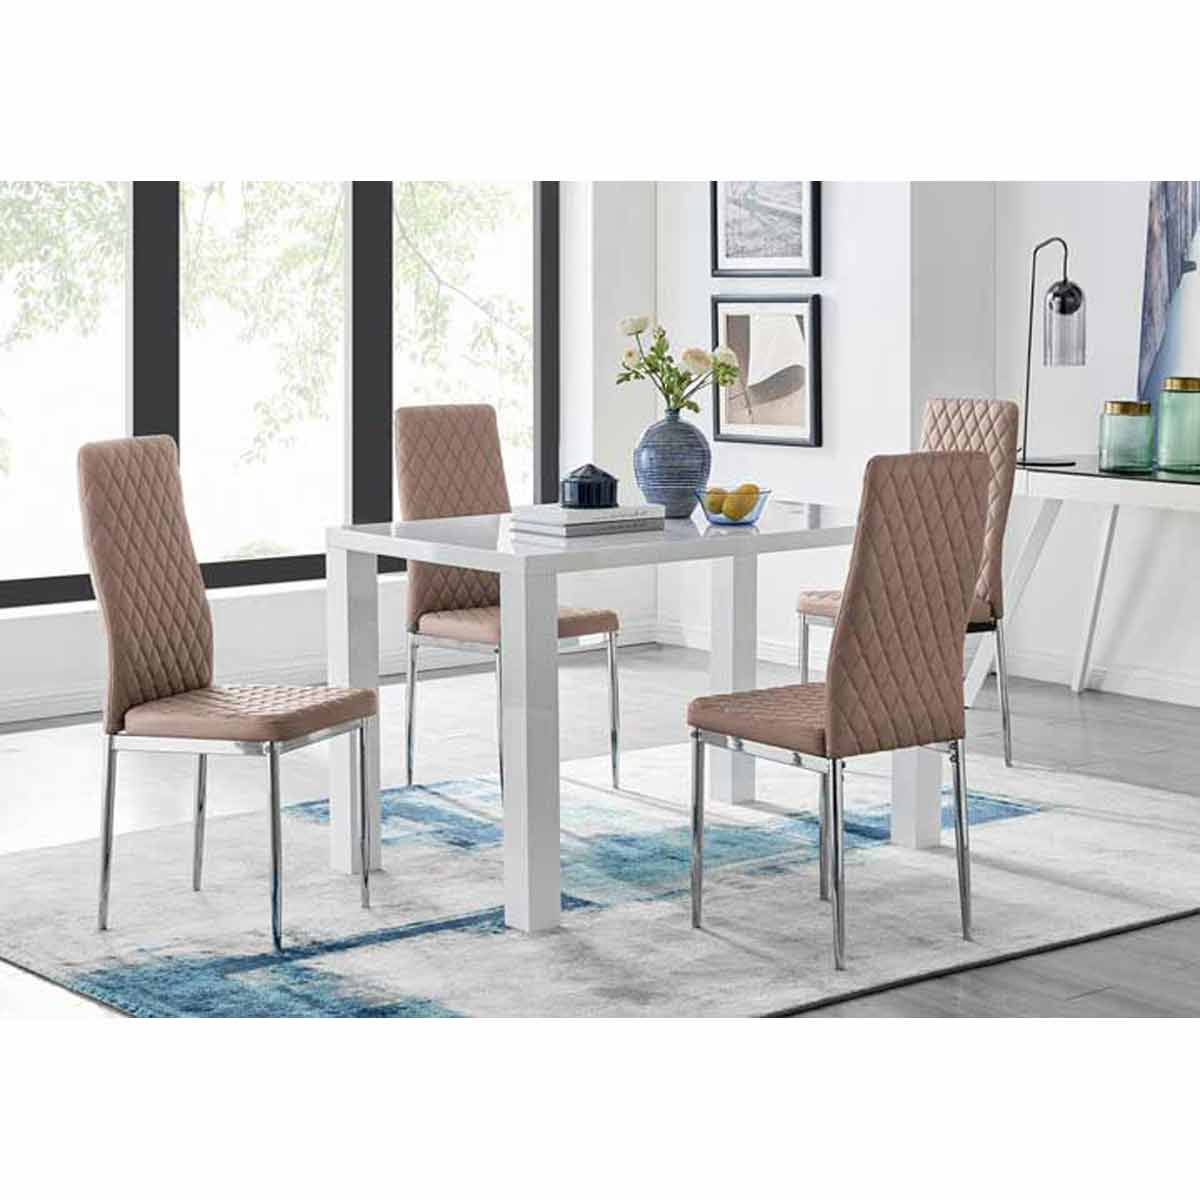 Furniture Box Pivero White High Gloss Dining Table and 4 Cappuccino Grey Milan Chairs Set